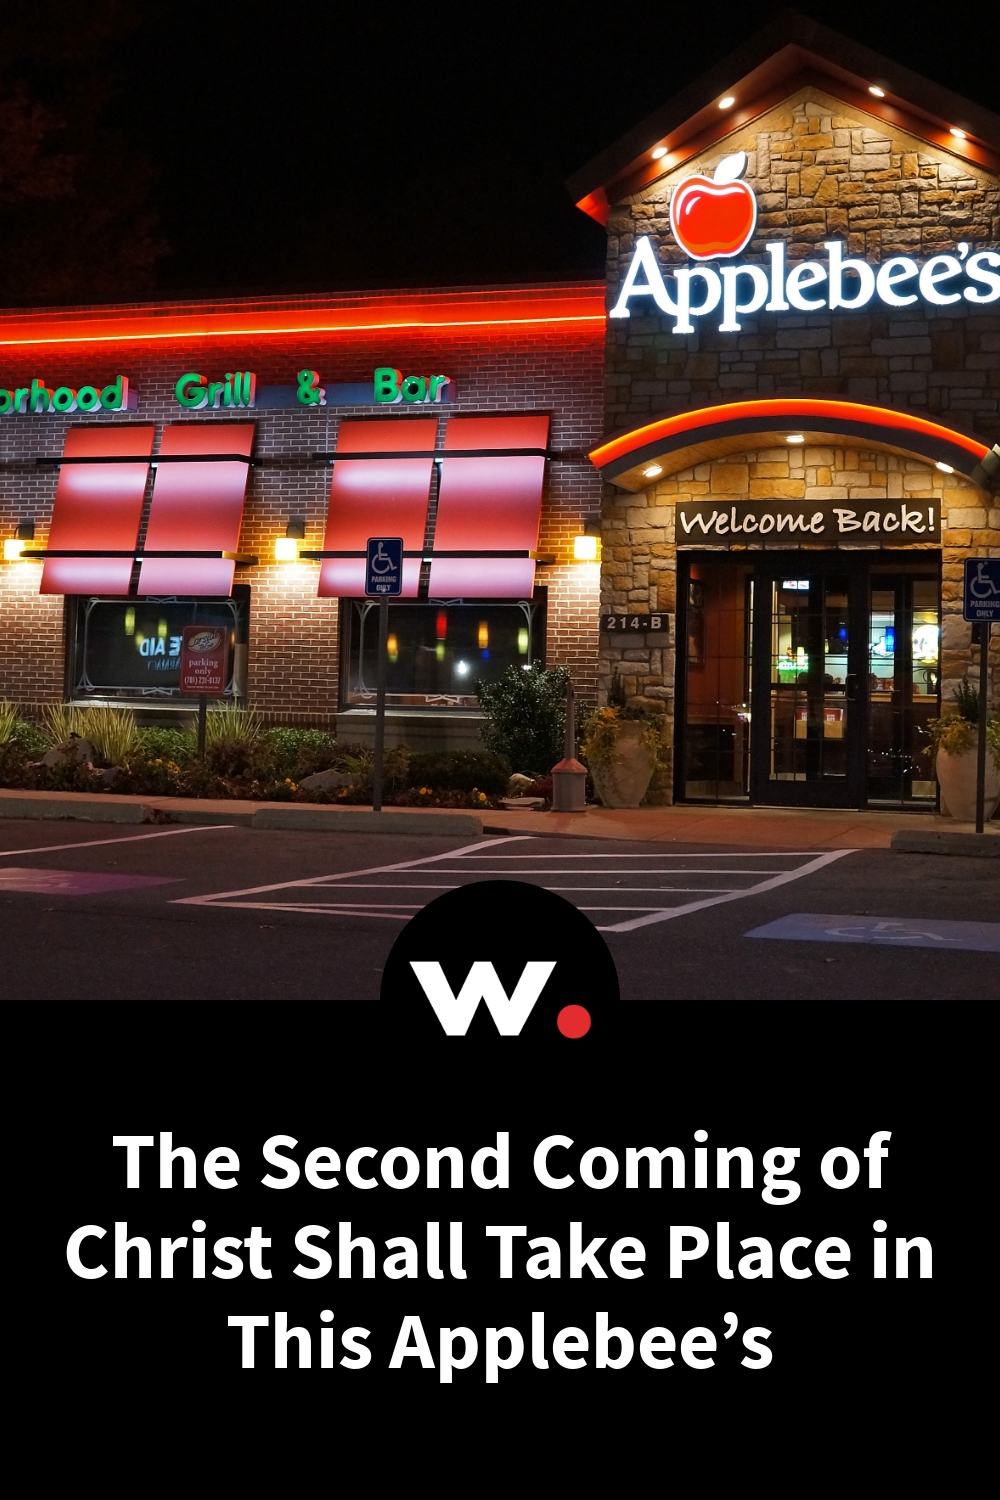 The Second Coming of Christ Shall Take Place in This Applebee's